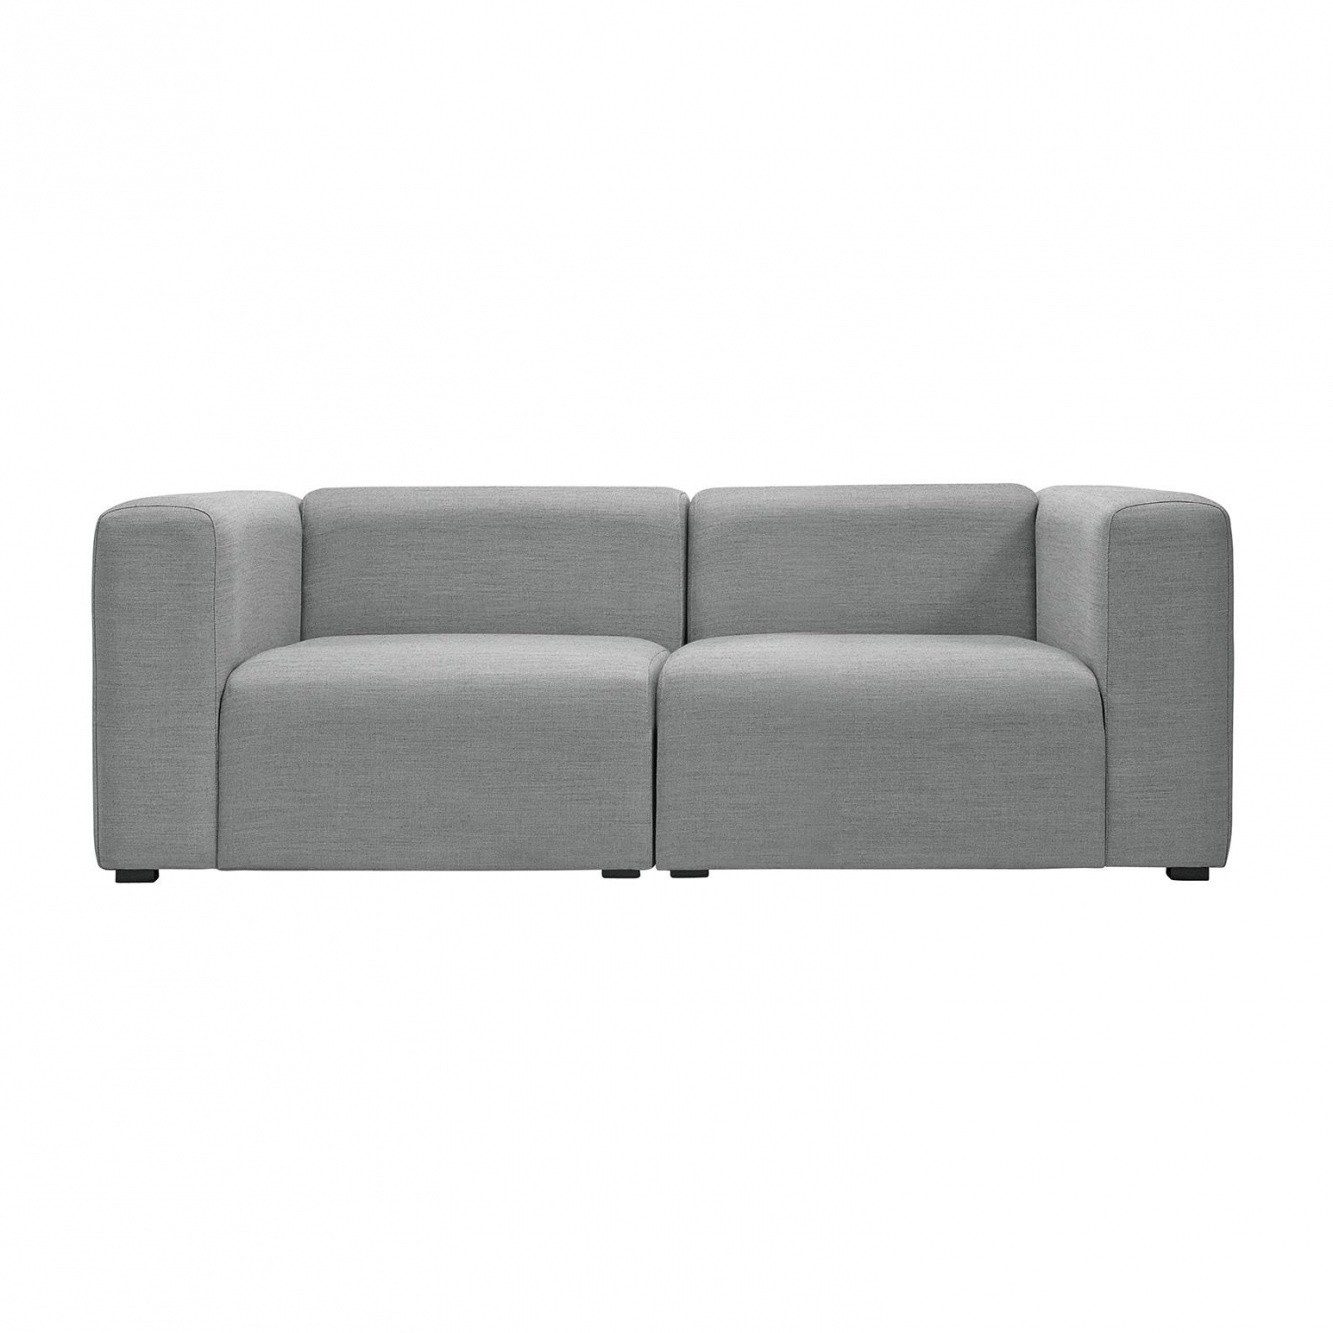 hay mags 2 seater sofa fabric surface ambientedirect. Black Bedroom Furniture Sets. Home Design Ideas